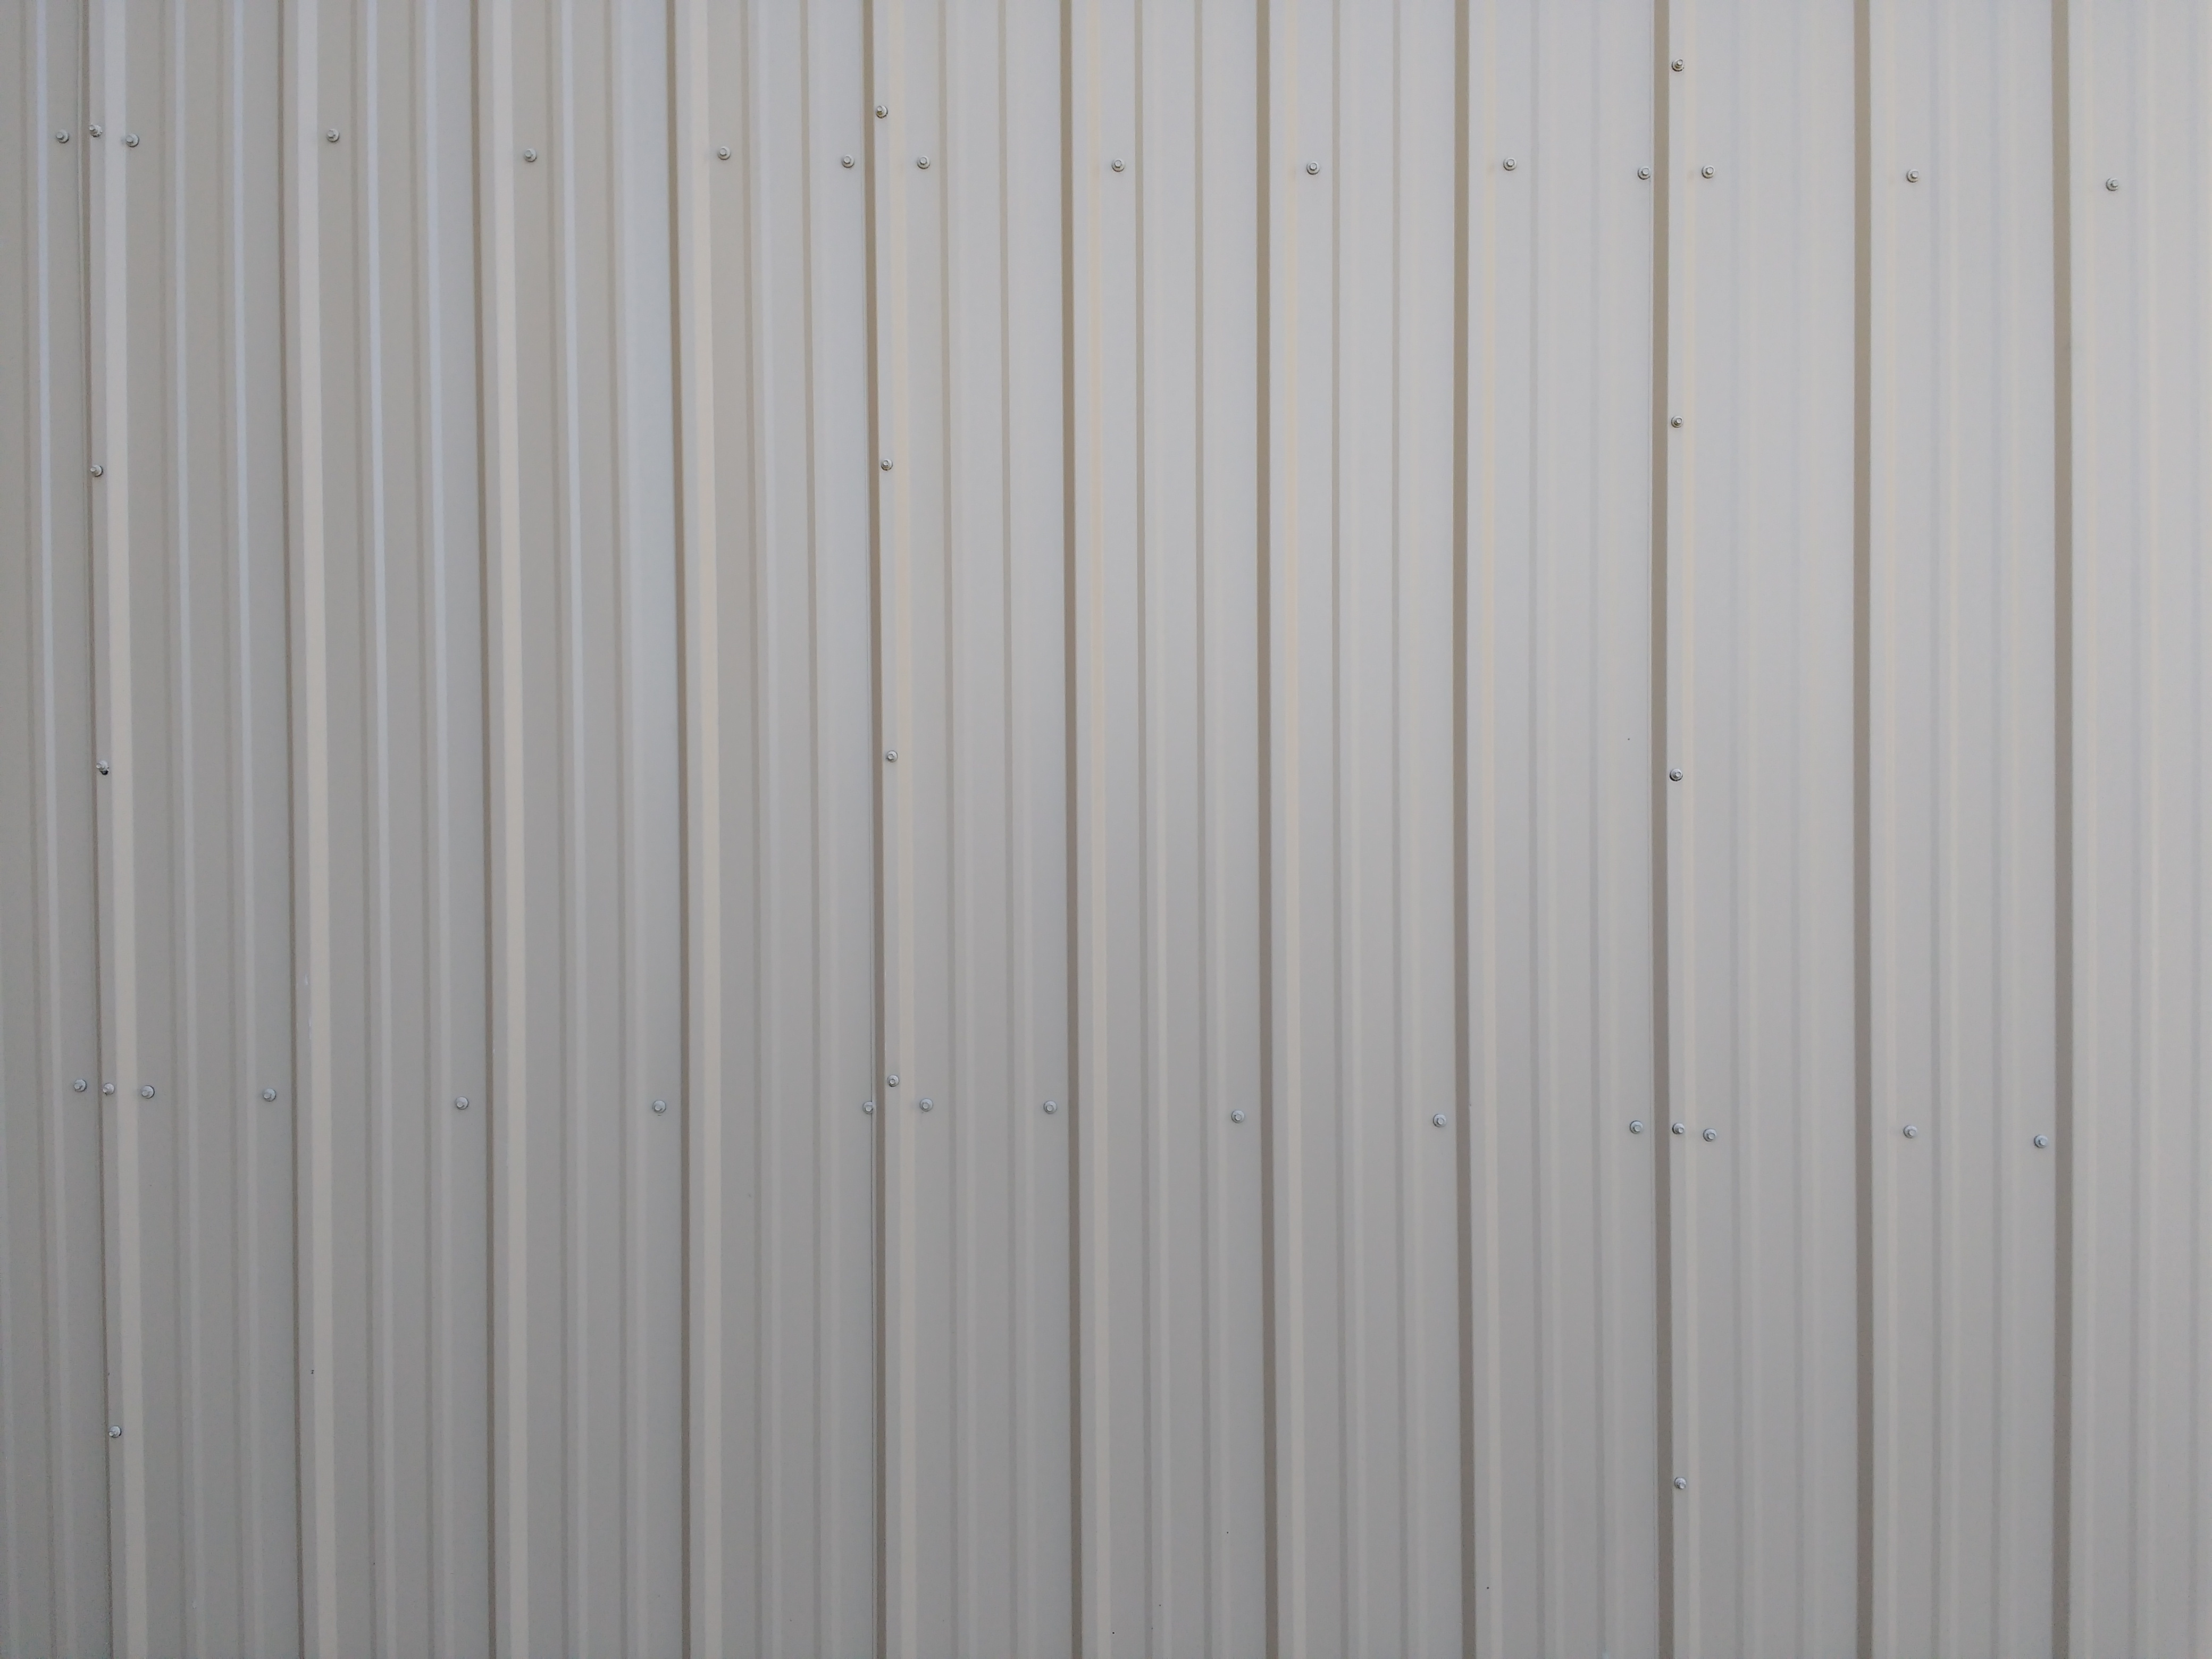 Ribbed Metal Siding Texture Beige Photos Public Domain